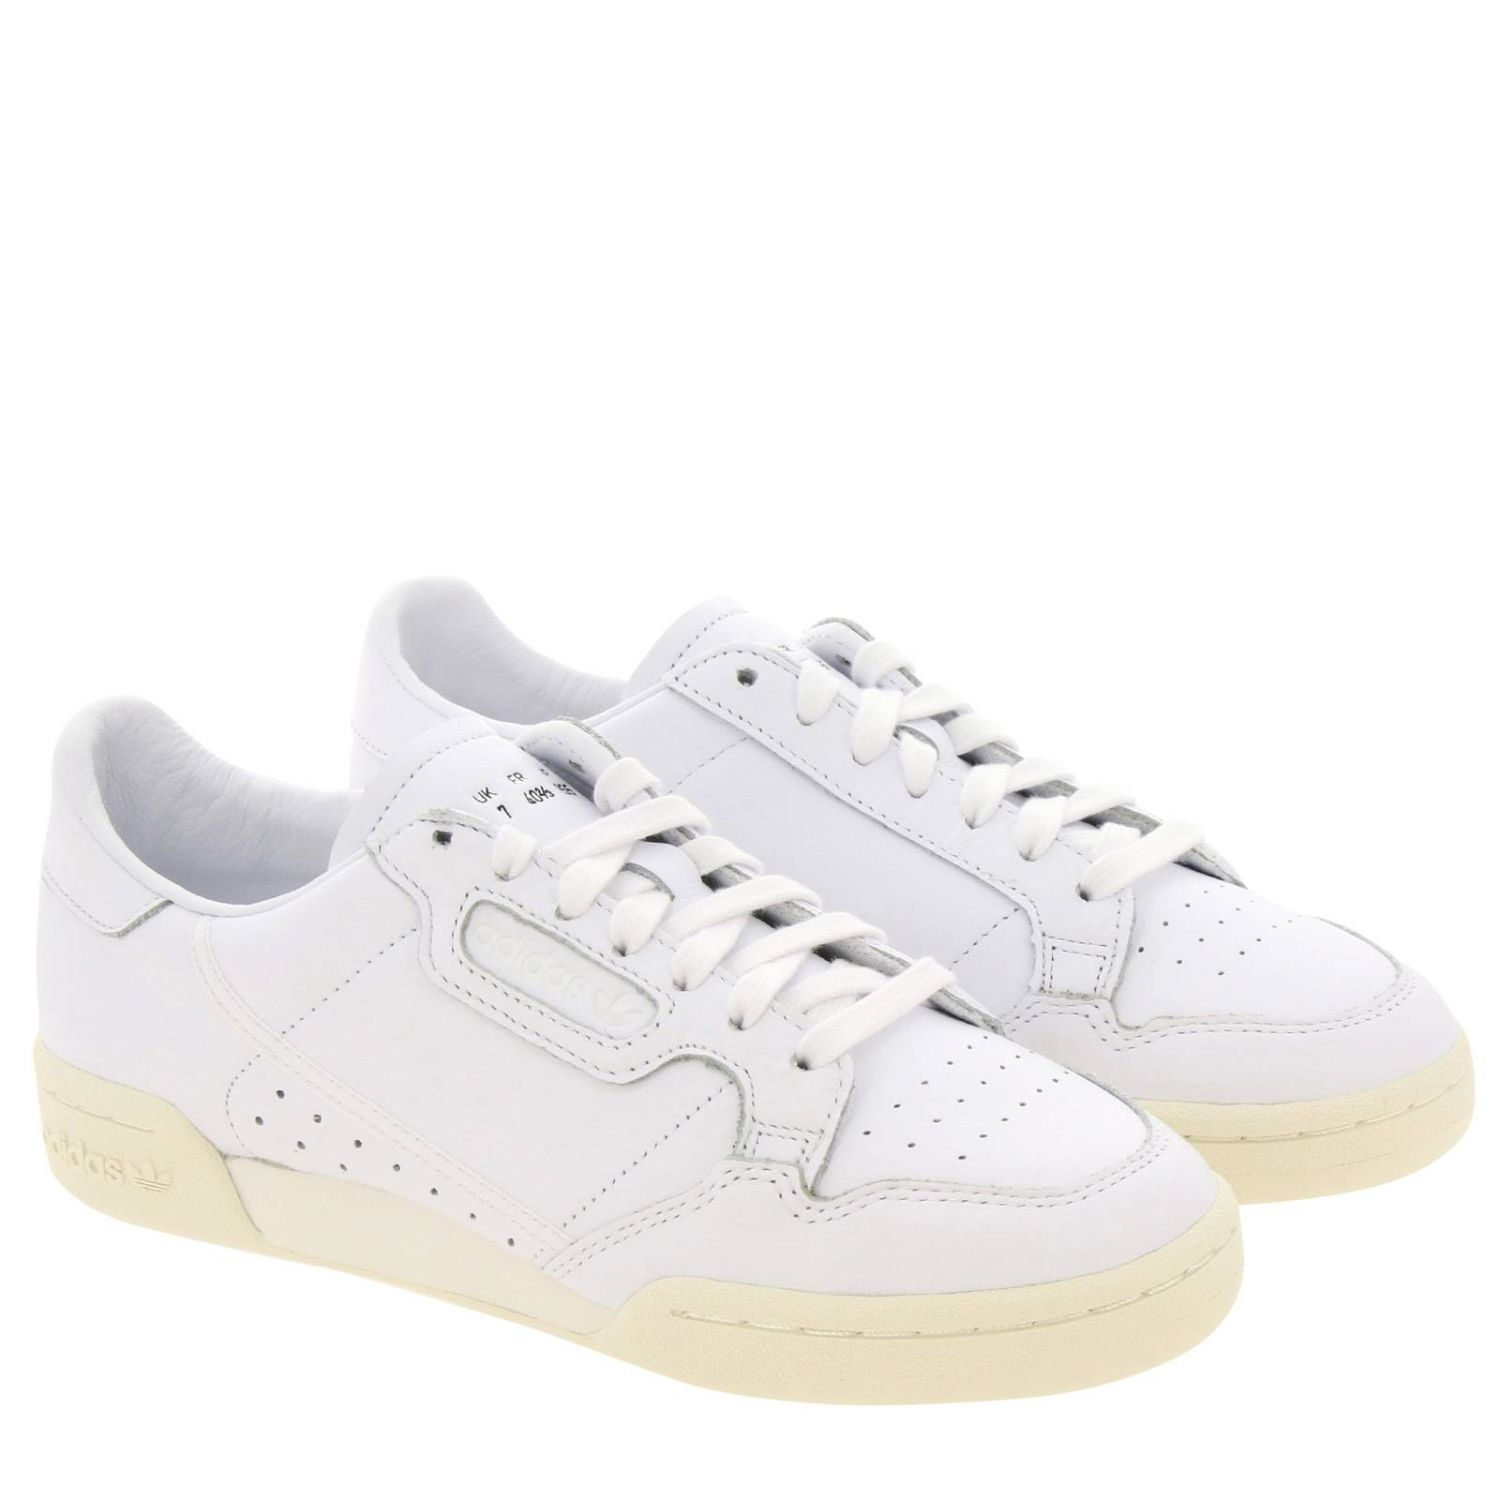 Sneakers Adidas Originals: Adidas Originals 80 Sneakers in smooth leather with holes white 2